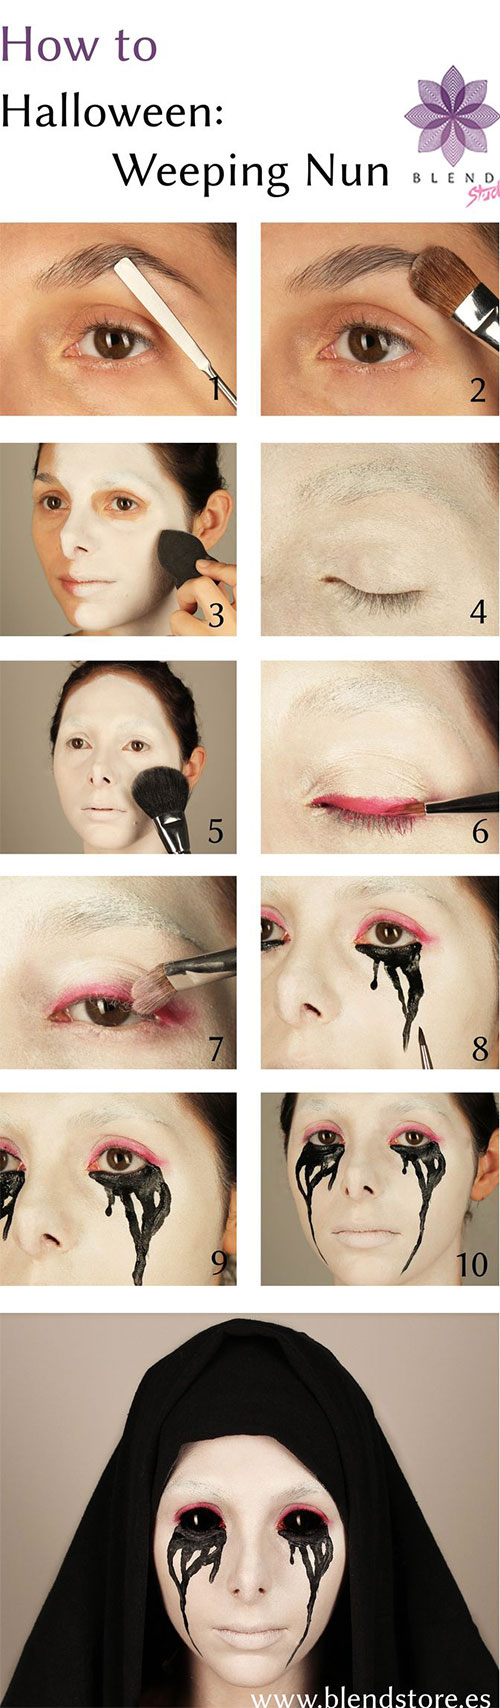 15-Step-By-Step-Halloween-Make-Up-Tutorials-For-Beginners-Learners-2014-8